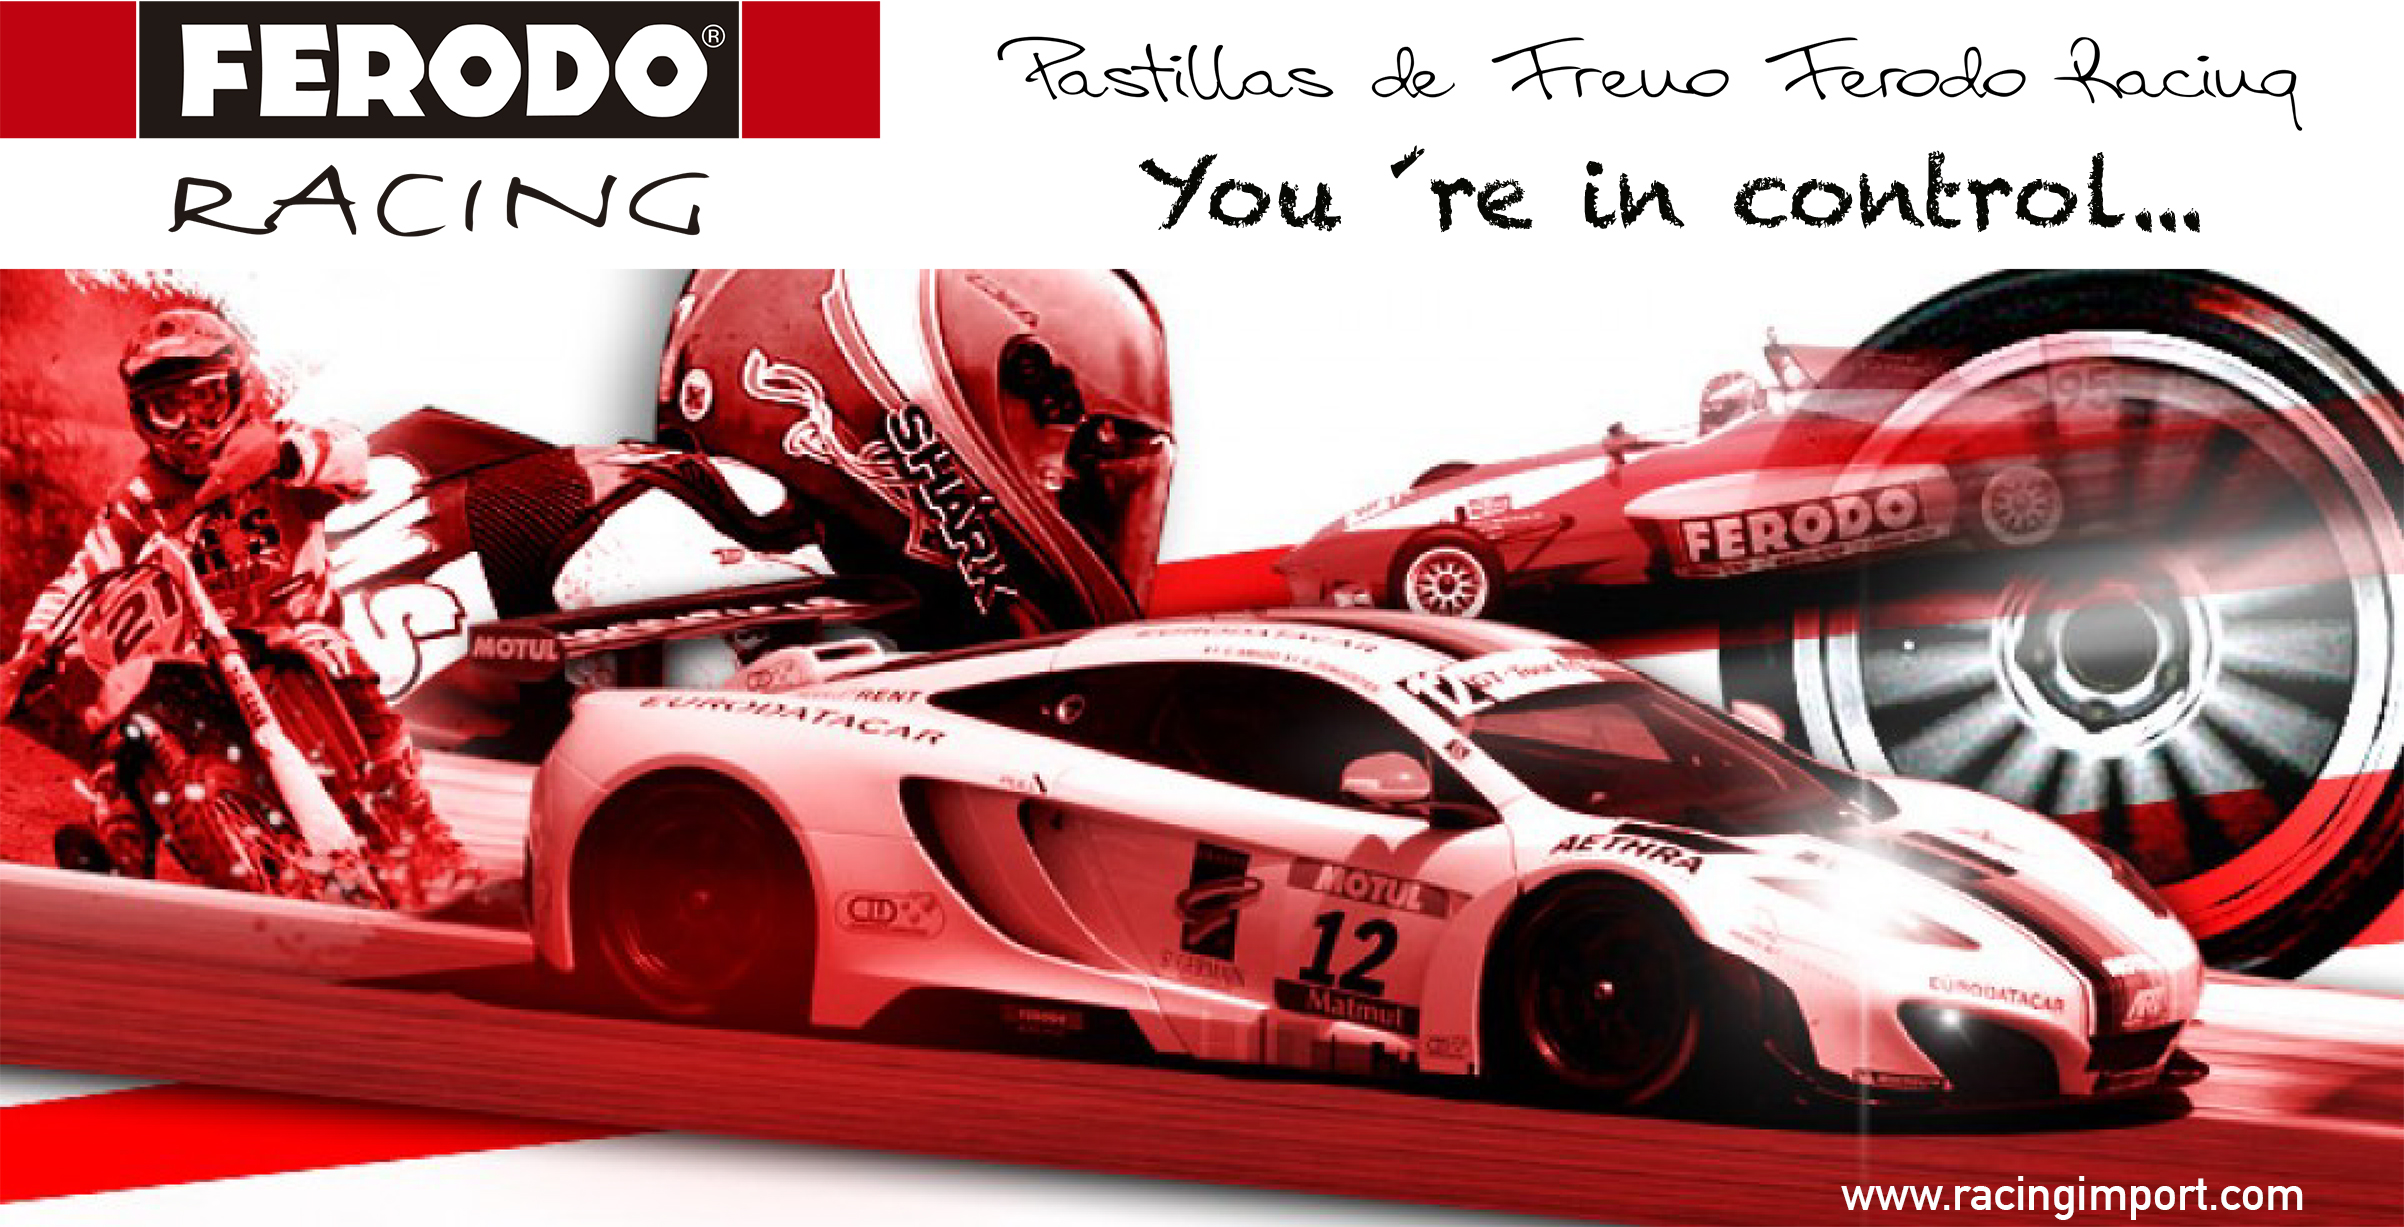 Pastillas de Freno Ferodo Racing